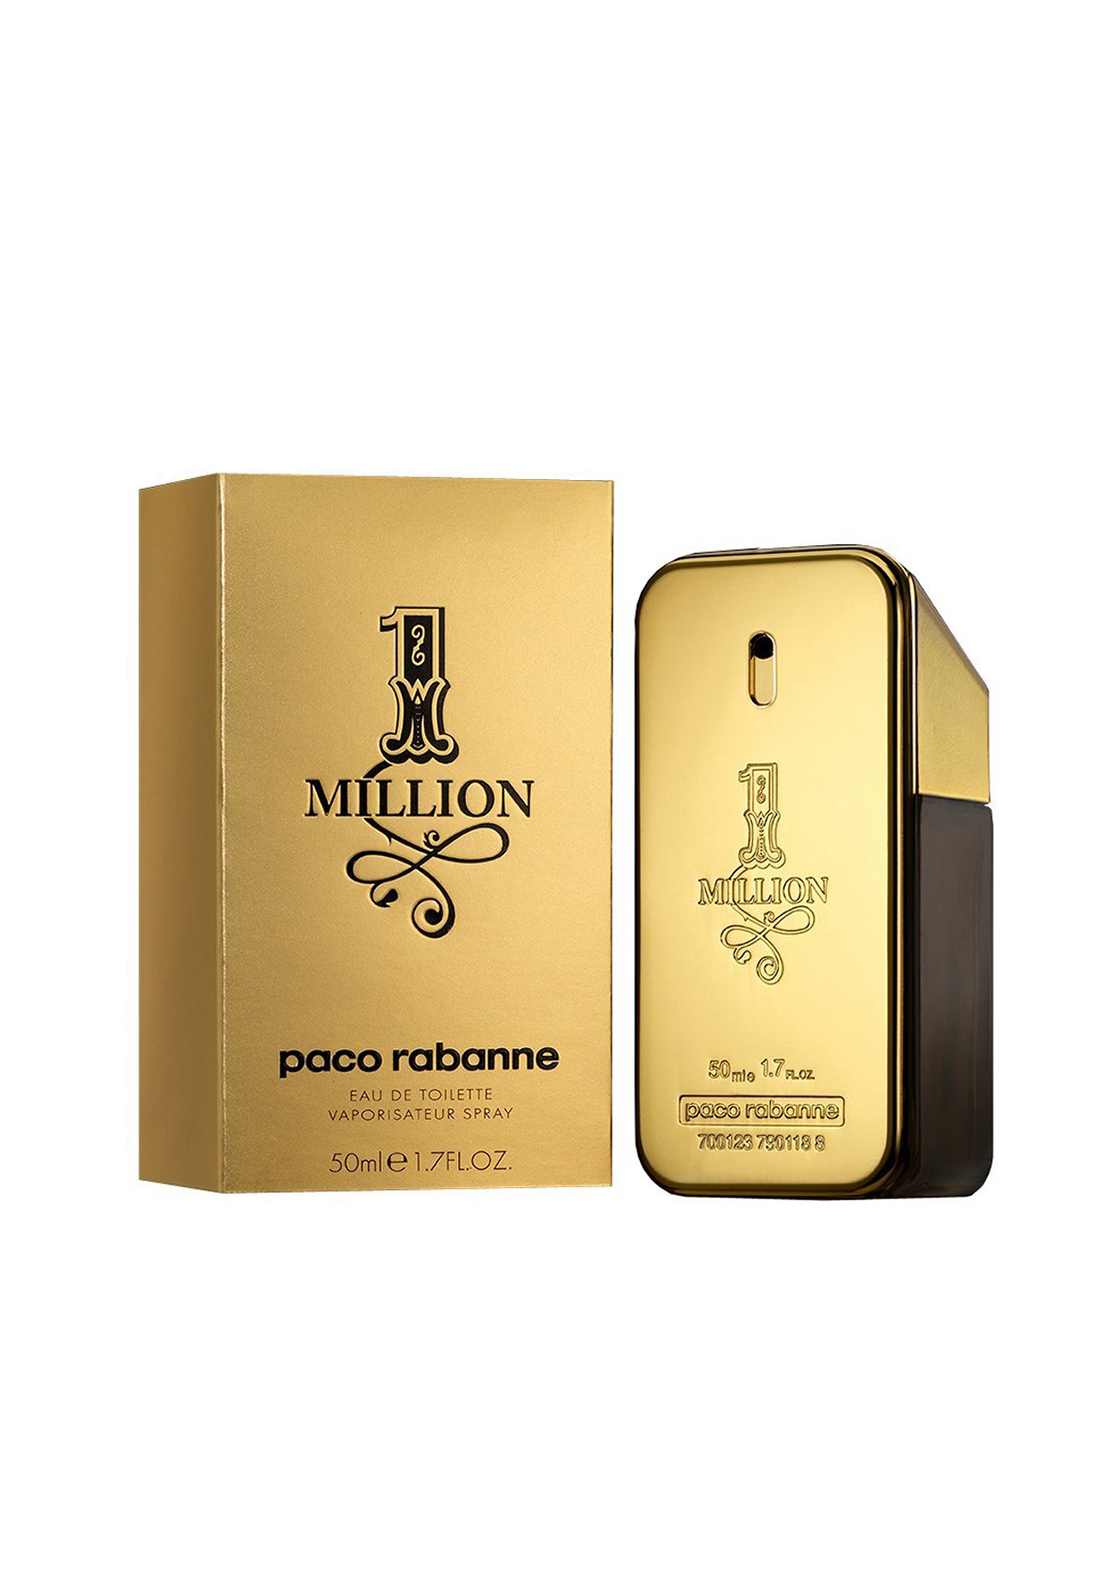 Paco Rabanne 1 Million Eau de Toilette, 50ml